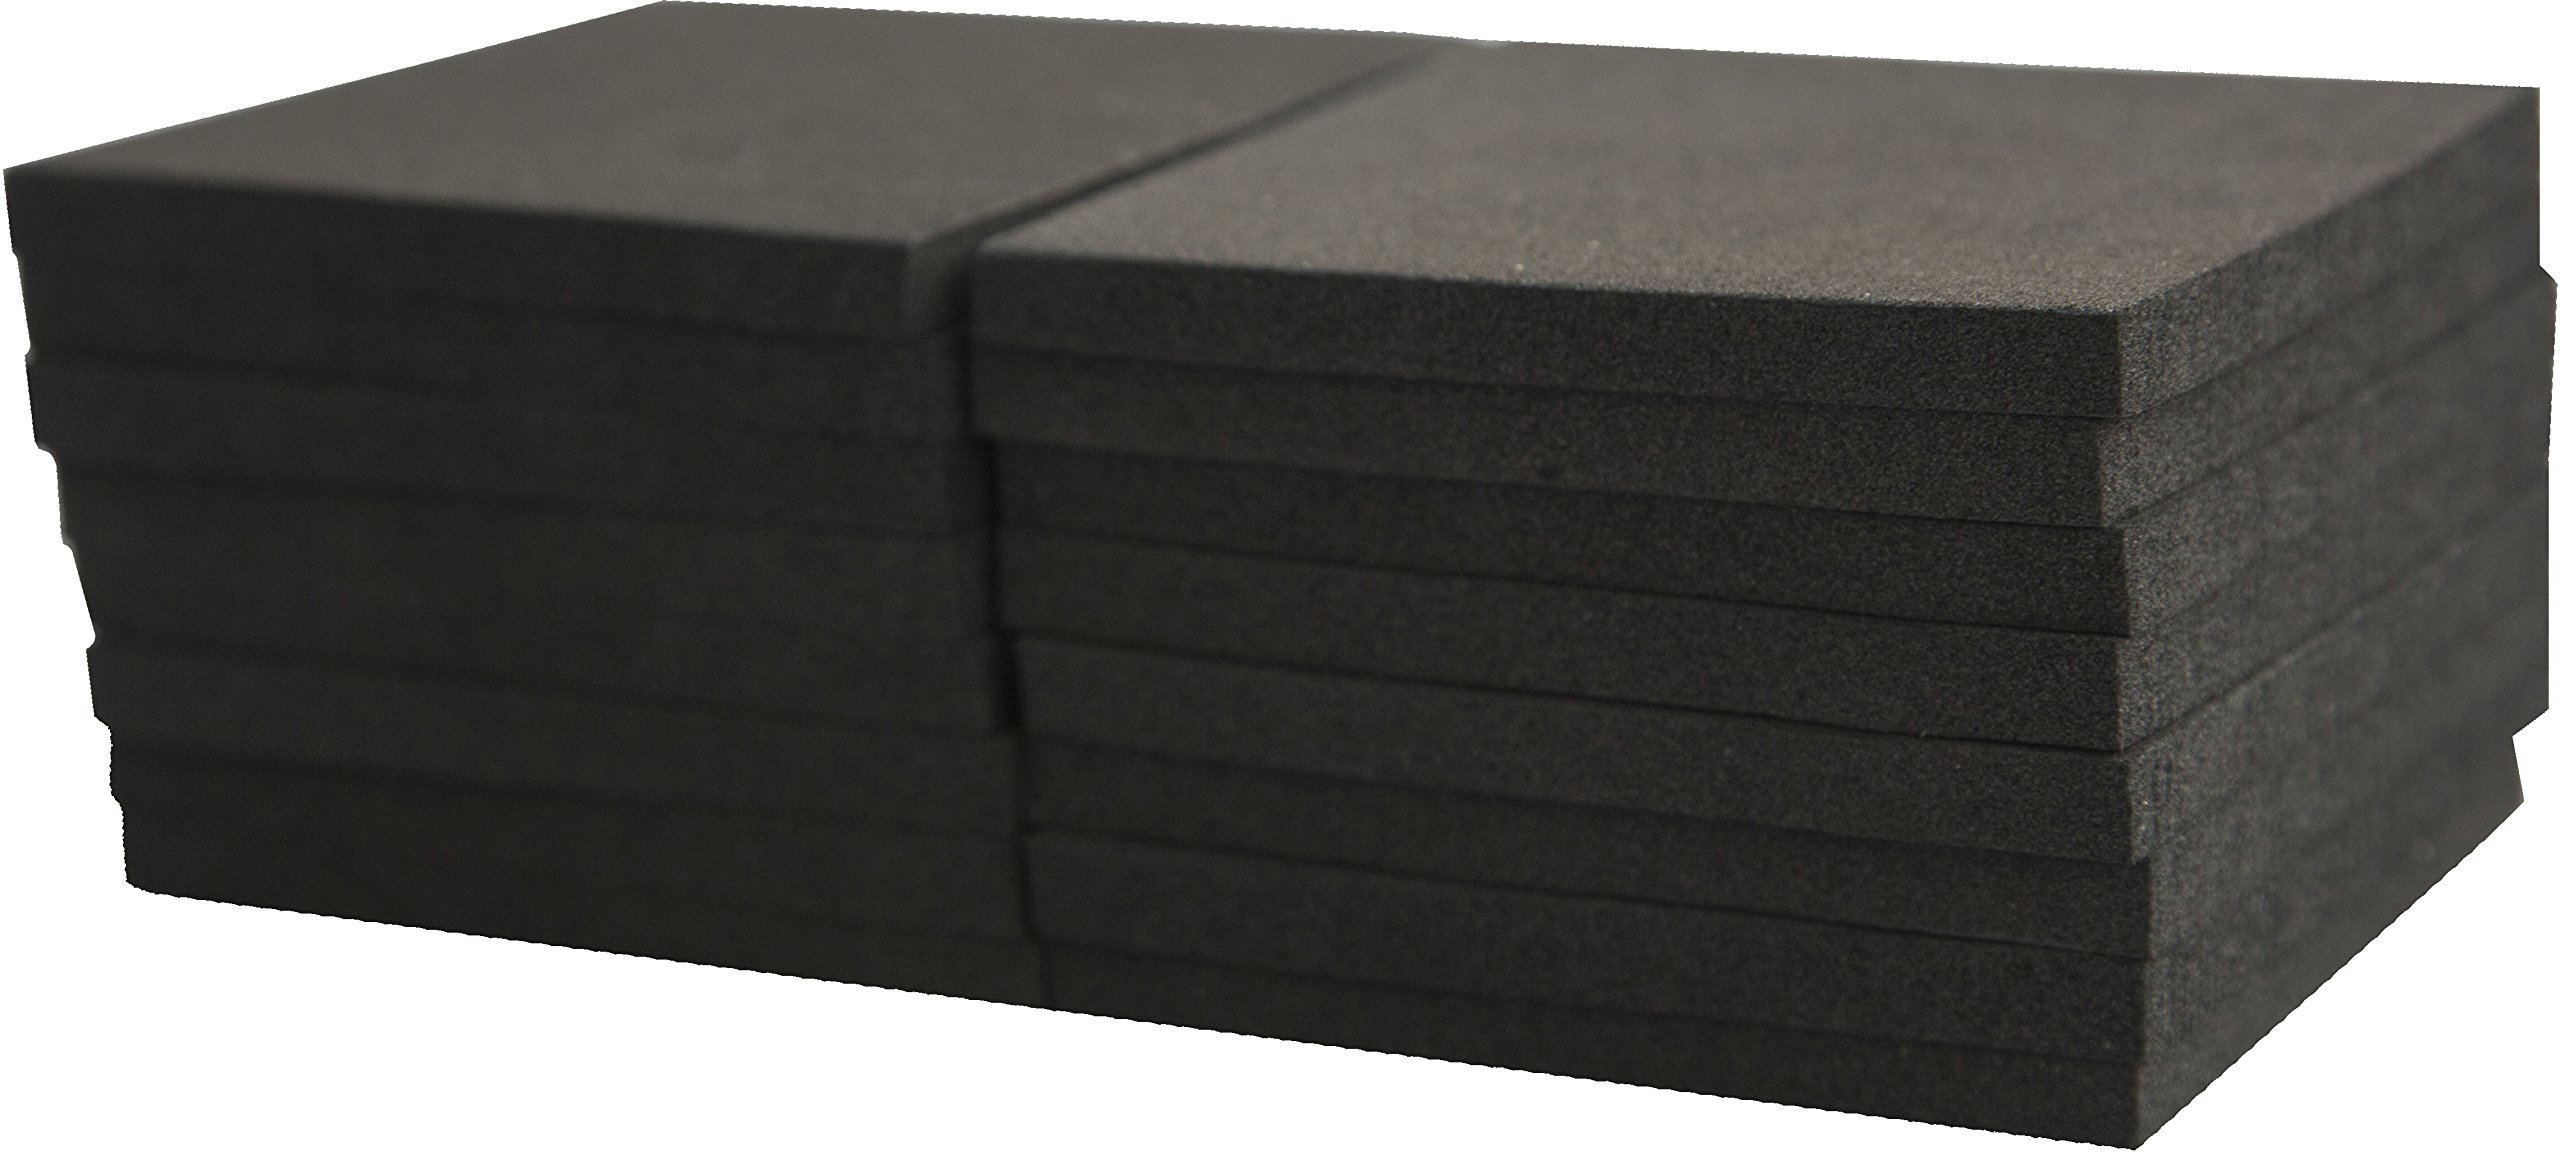 Xcel Foam Rubber Padding 16-Piece Acoustic Damper Anti-Vibration Closed-Cell Furniture Pads 3''x3''x1/4''